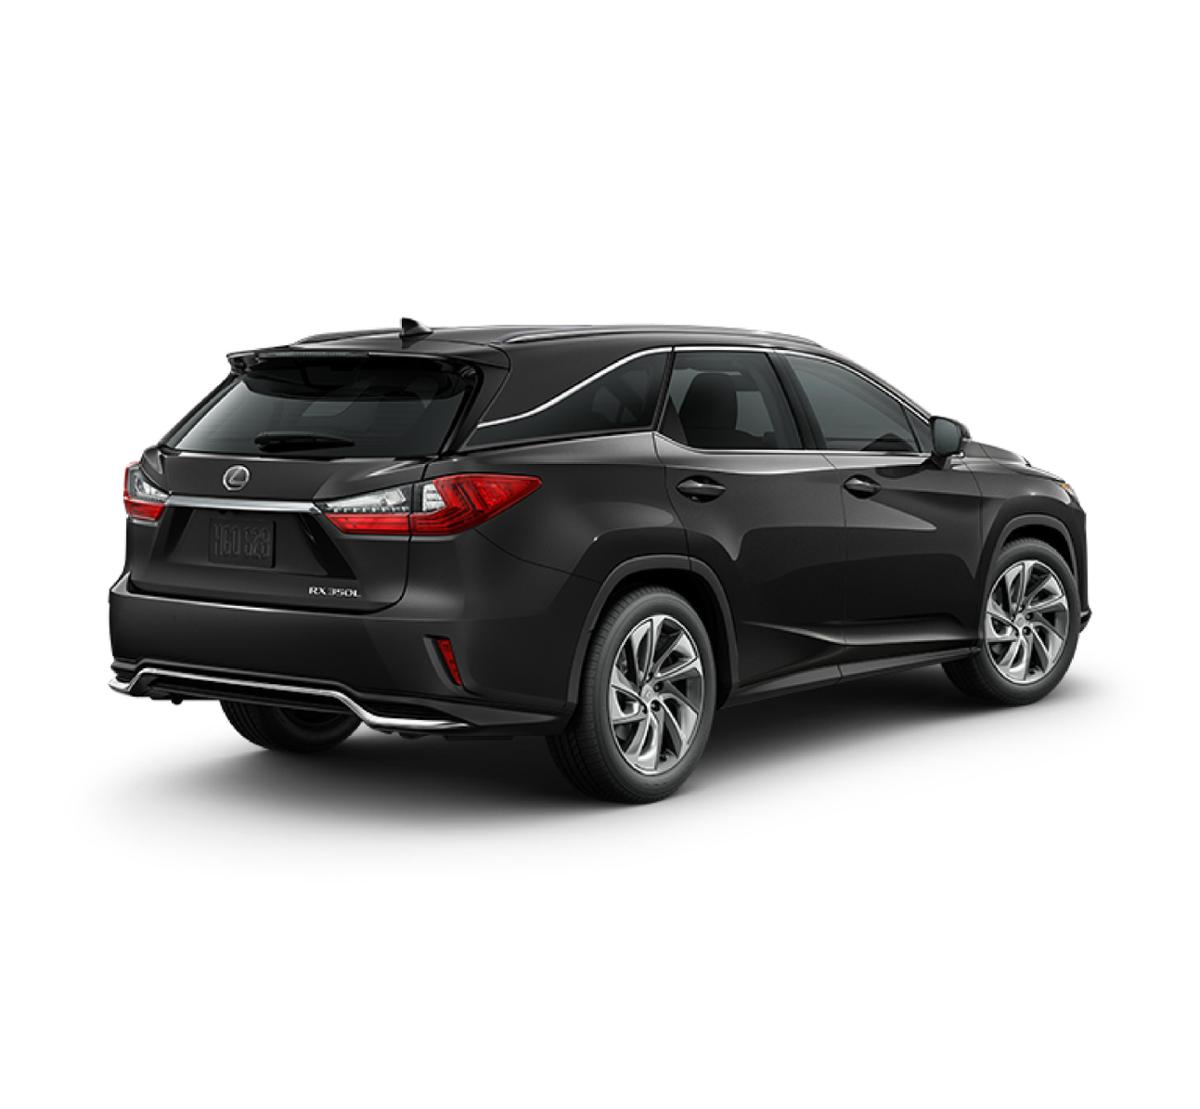 Lexus Dealerships In Ct: East Haven Lexus RX 350L 2019 Caviar: New Suv For Sale